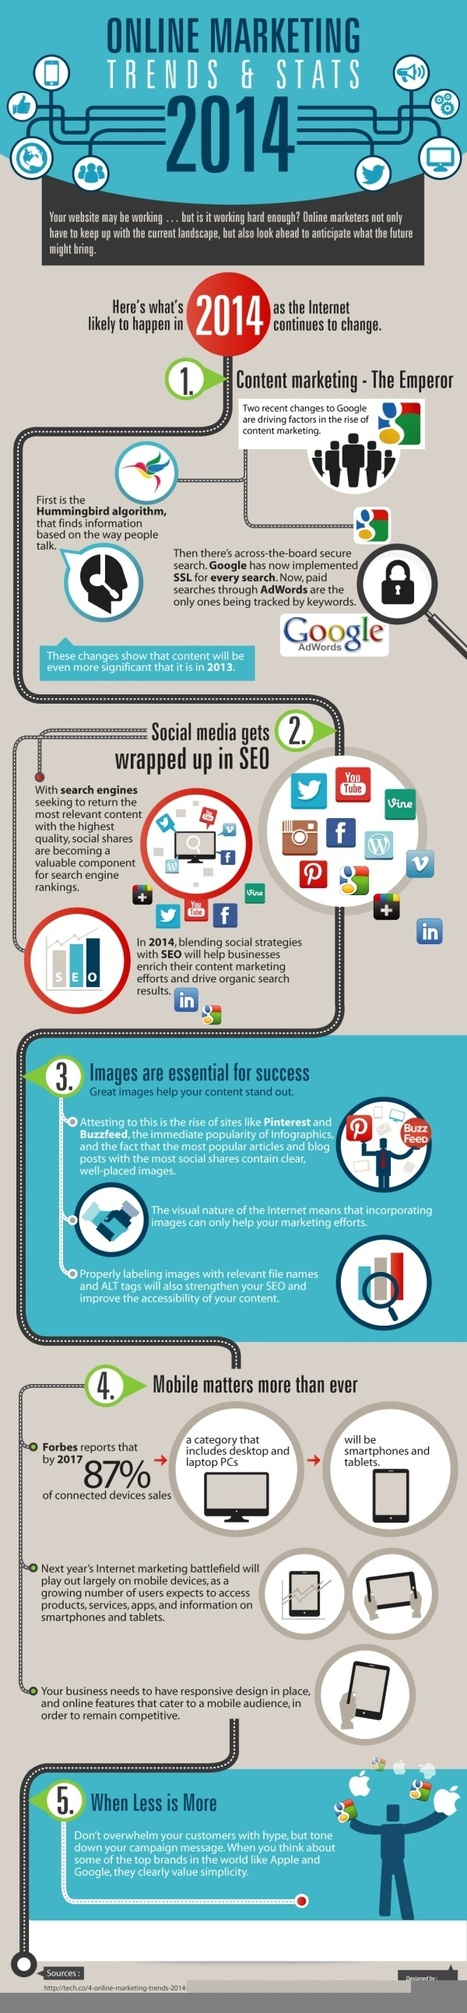 Content, Social, Mobile – Digital Marketing Trends For 2014 | Social Media, Digital Marketing | Scoop.it